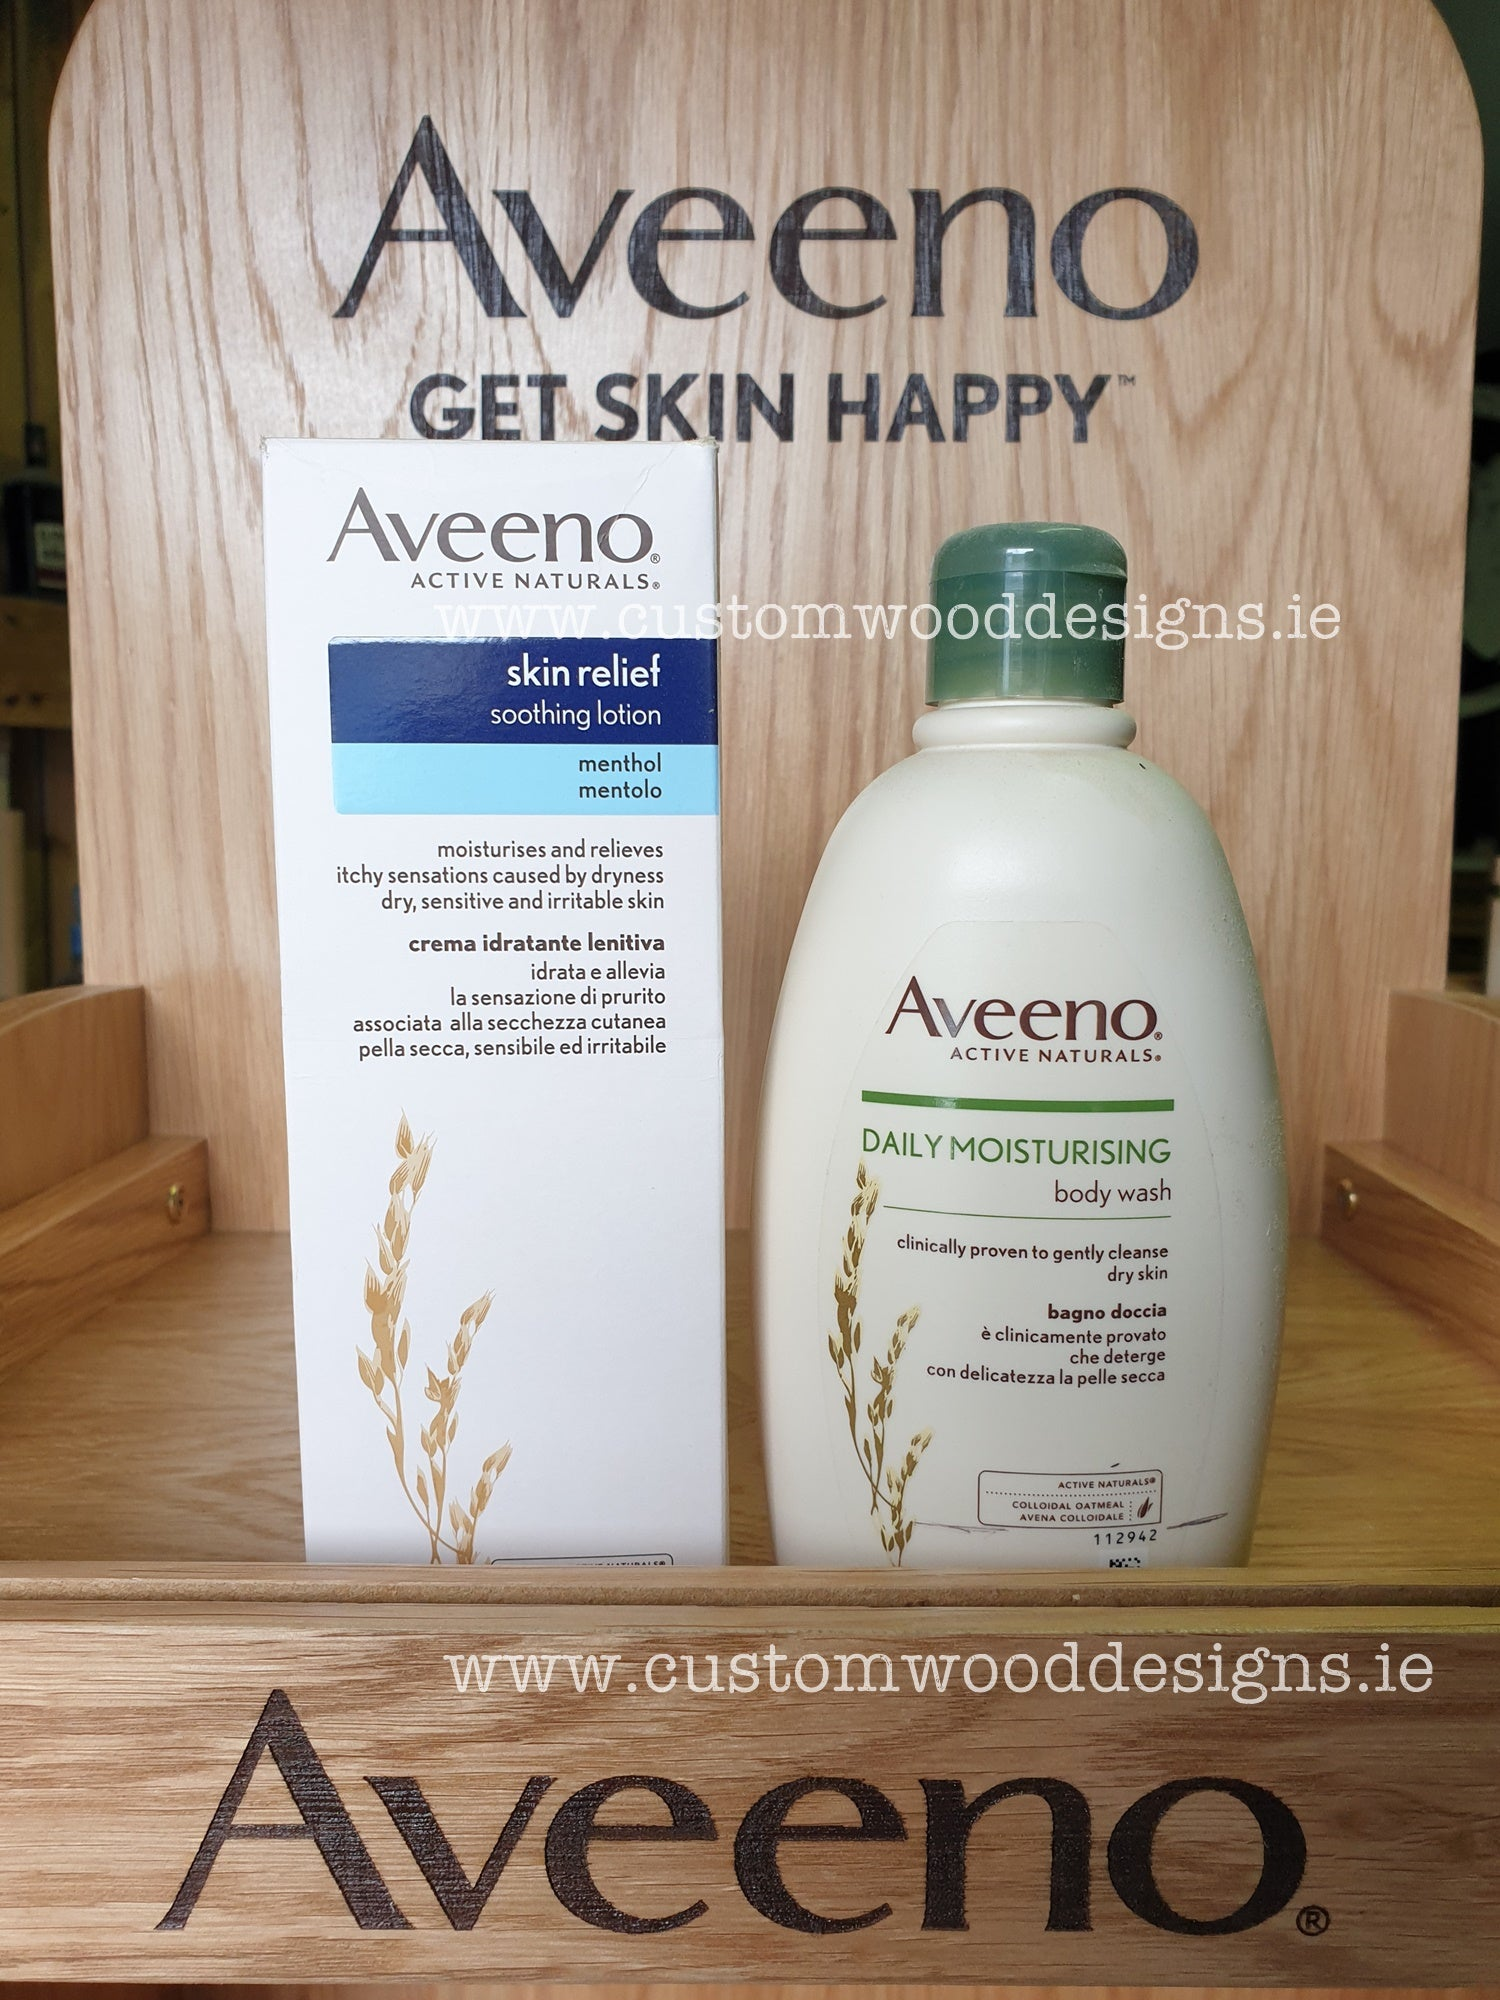 aveeno pharmacy product stand point of sale display irish manufacturer point od sale maker producer free standing unit display producer maker Ireland Dublin signs maker dublin beanding promotional product maker producer ireland dublin timber wooden festival stands the best sign amker ireland the best point of sale maker Dublin stuffing product wood promotional point of saele maker Dublin Ireland point of sale producer irish producer fsdu counter display units counter retail display specialists retail space display sepcialists retail wooden display shop wooden display maker manufacturer shop retail maker wood producer point of sale branded crates branded items